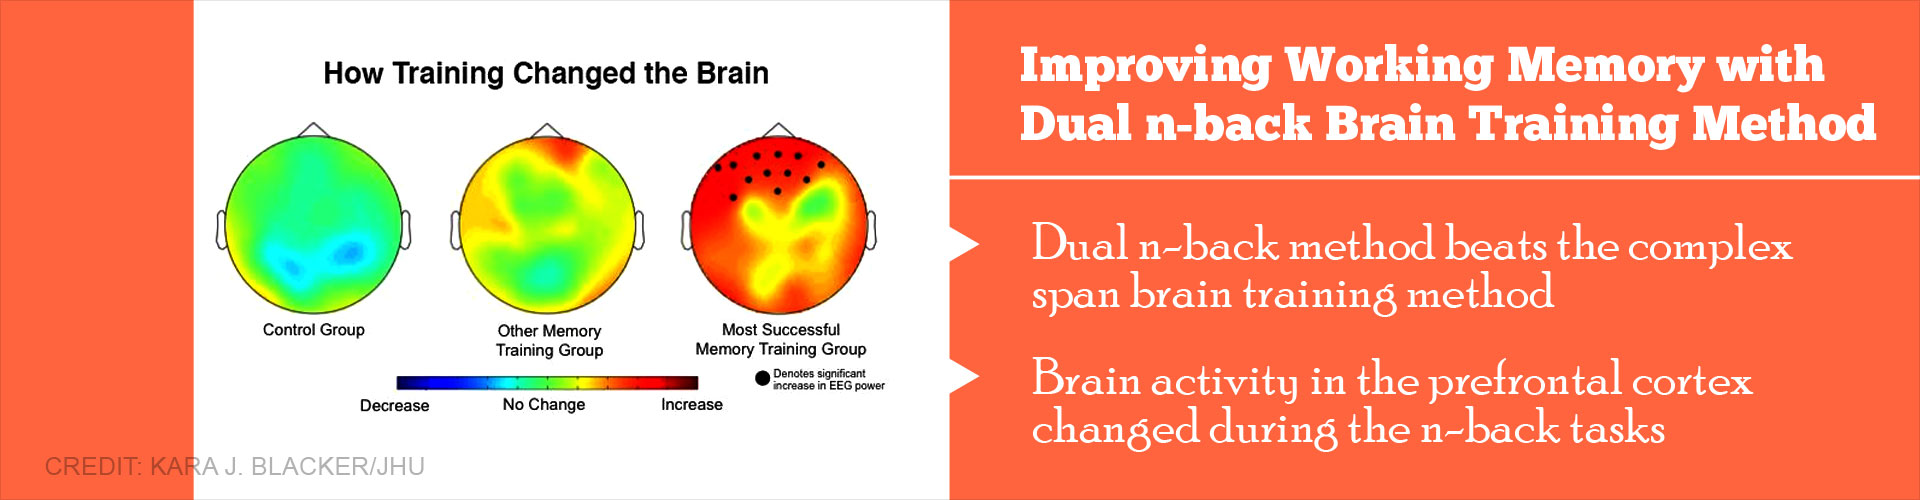 Improving Working Memory The Dual N-Back Brain Training Way